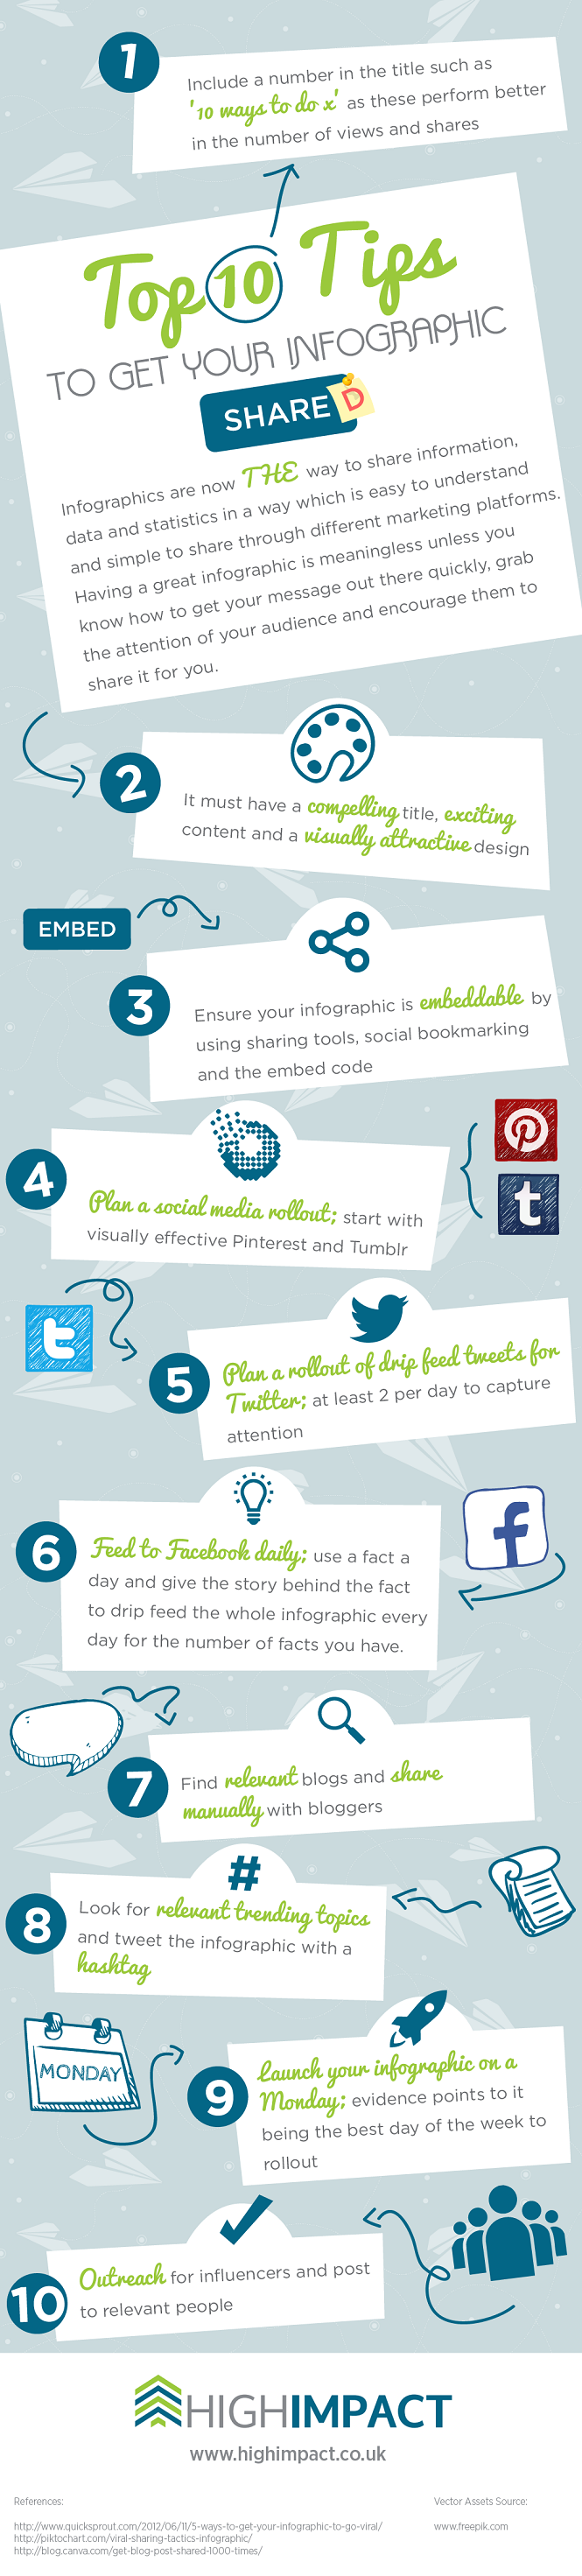 How to Get Your Infographic Noticed on the internet and social web